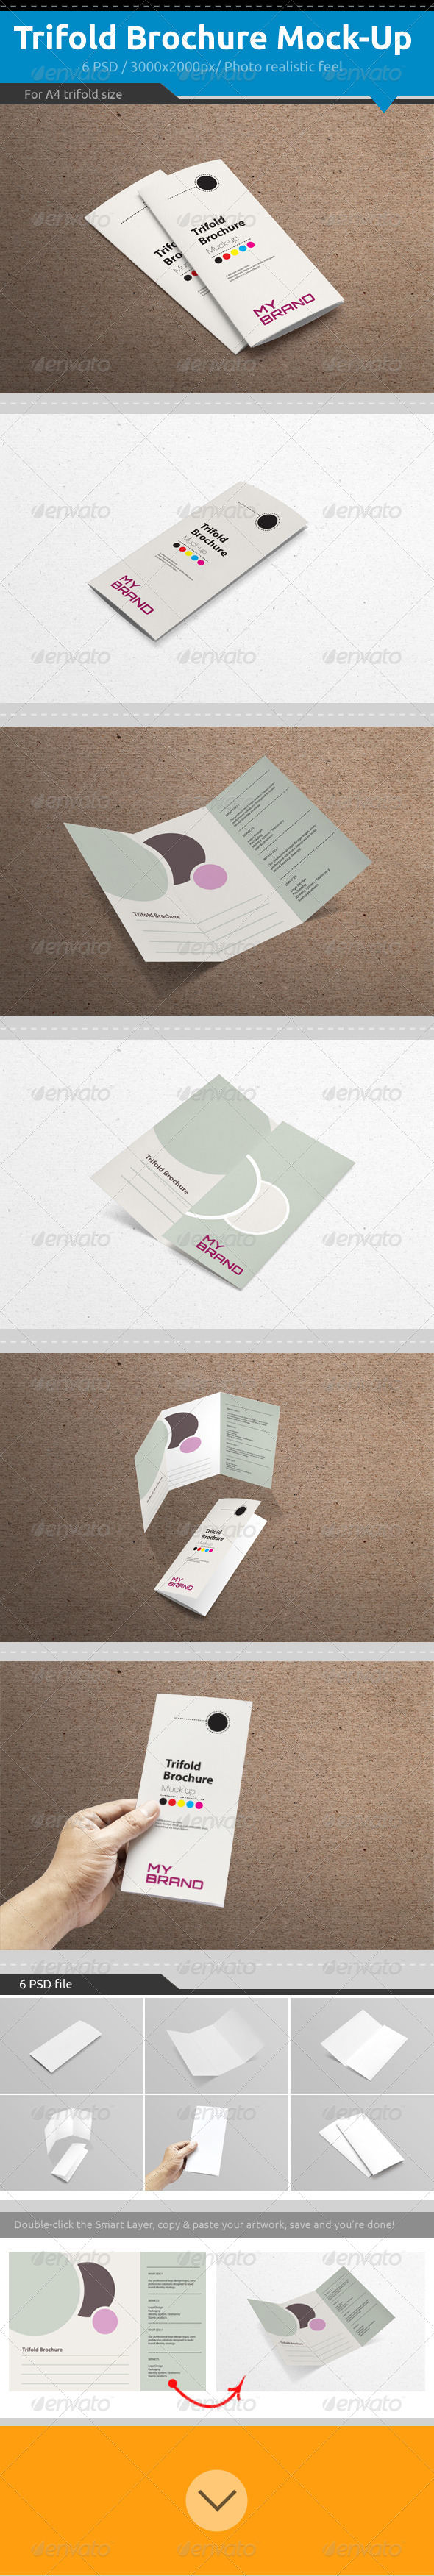 GraphicRiver Trifold Brochure Mock-Up 7458340